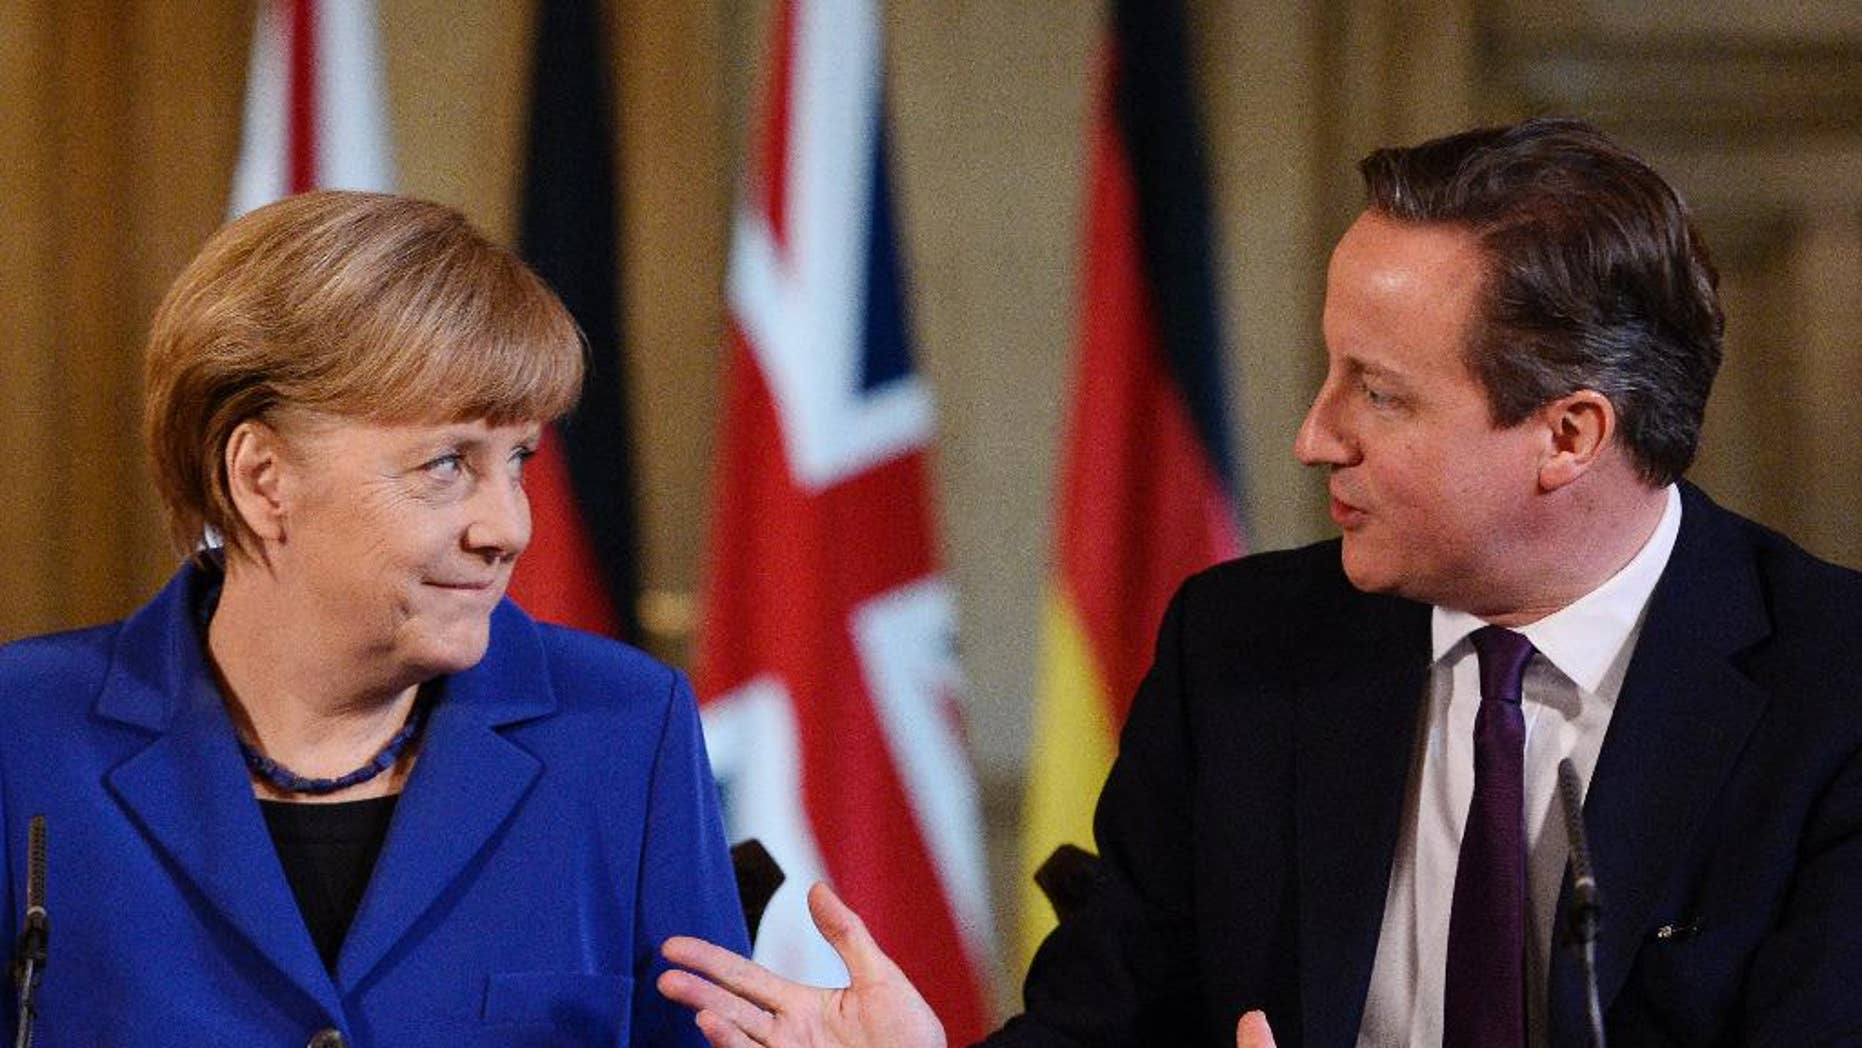 """FILE - In this Feb. 27, 2014 file picture British Prime Minister, David Cameron, speaks with  German Chancellor Angela Merkel during their joint press conference inside 10 Downing Street in London. Chancellor Angela Merkel's spokesman says Germany wants Britain to remain an """"active and committed"""" European Union member but is insisting the principle of free movement of workers within the bloc isn't negotiable. British Prime Minister David Cameron, facing political pressure from the rise of Britain's anti-EU UKIP party, wants to take steps to limit the level of migration from the EU into Britain. German weekly Der Spiegel reported Sunday Nov. 2, 2014 , without identifying sources, that German officials could envision giving up efforts to keep Britain in the EU if Cameron insists on limits.   (AP Photo/ Facundo Arrizabalaga, Poo,Filel)"""